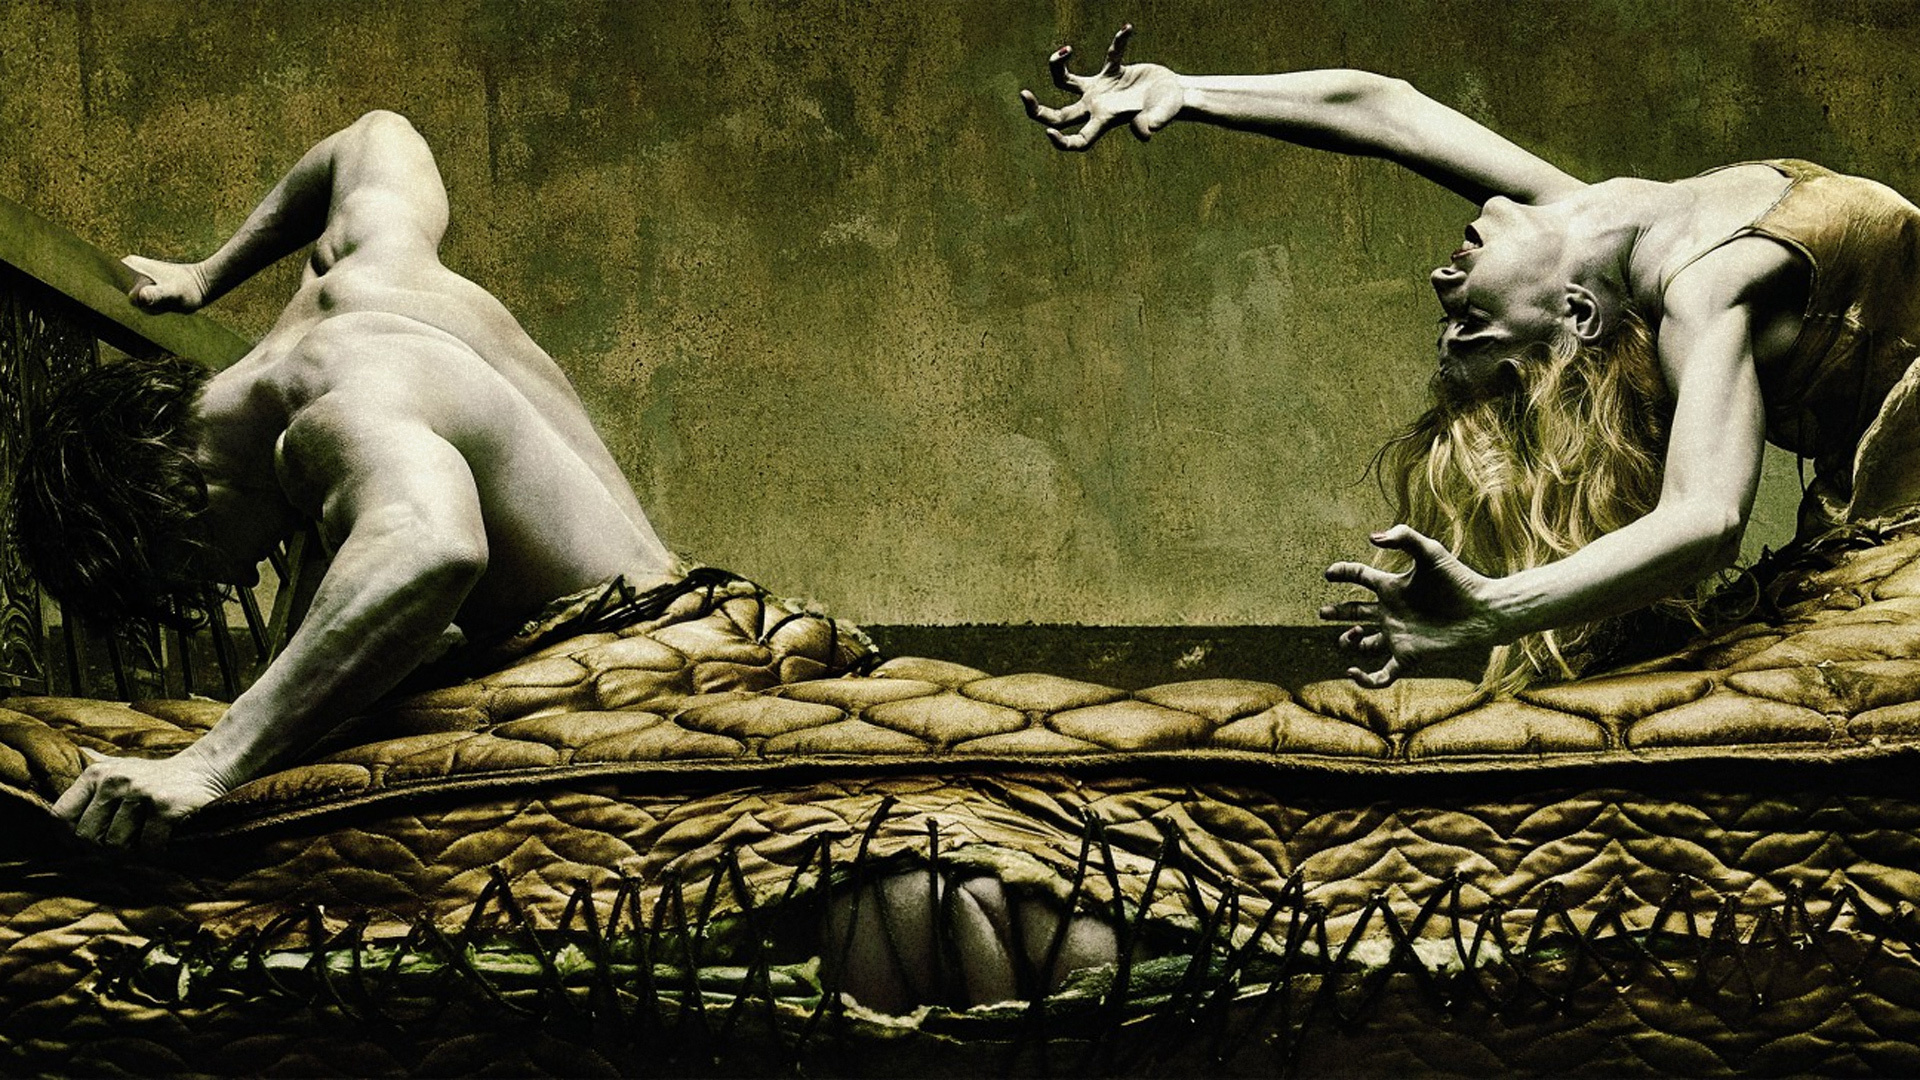 American horror story hd wallpaper background image 1920x1080 id 675293 wallpaper abyss - American horror story wallpaper ...